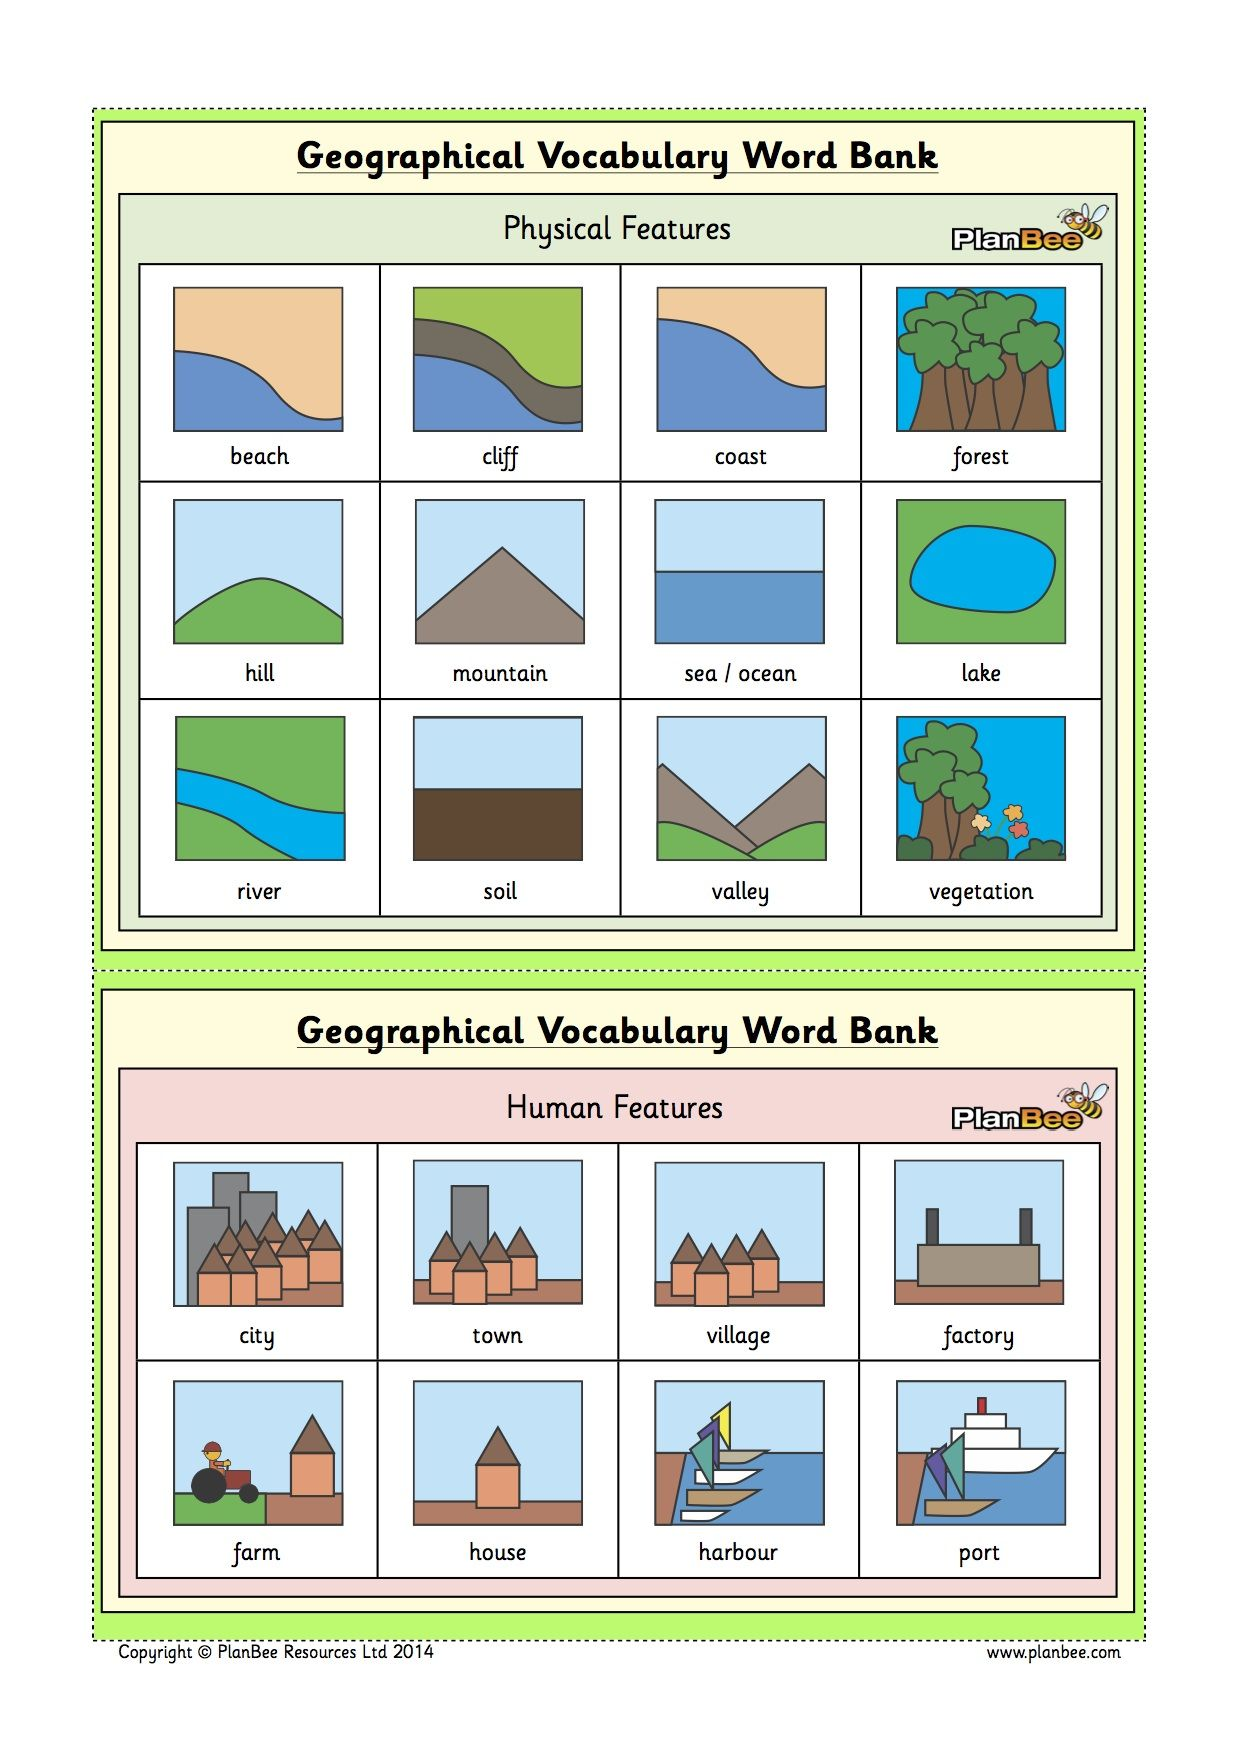 Geographical Vocabulary